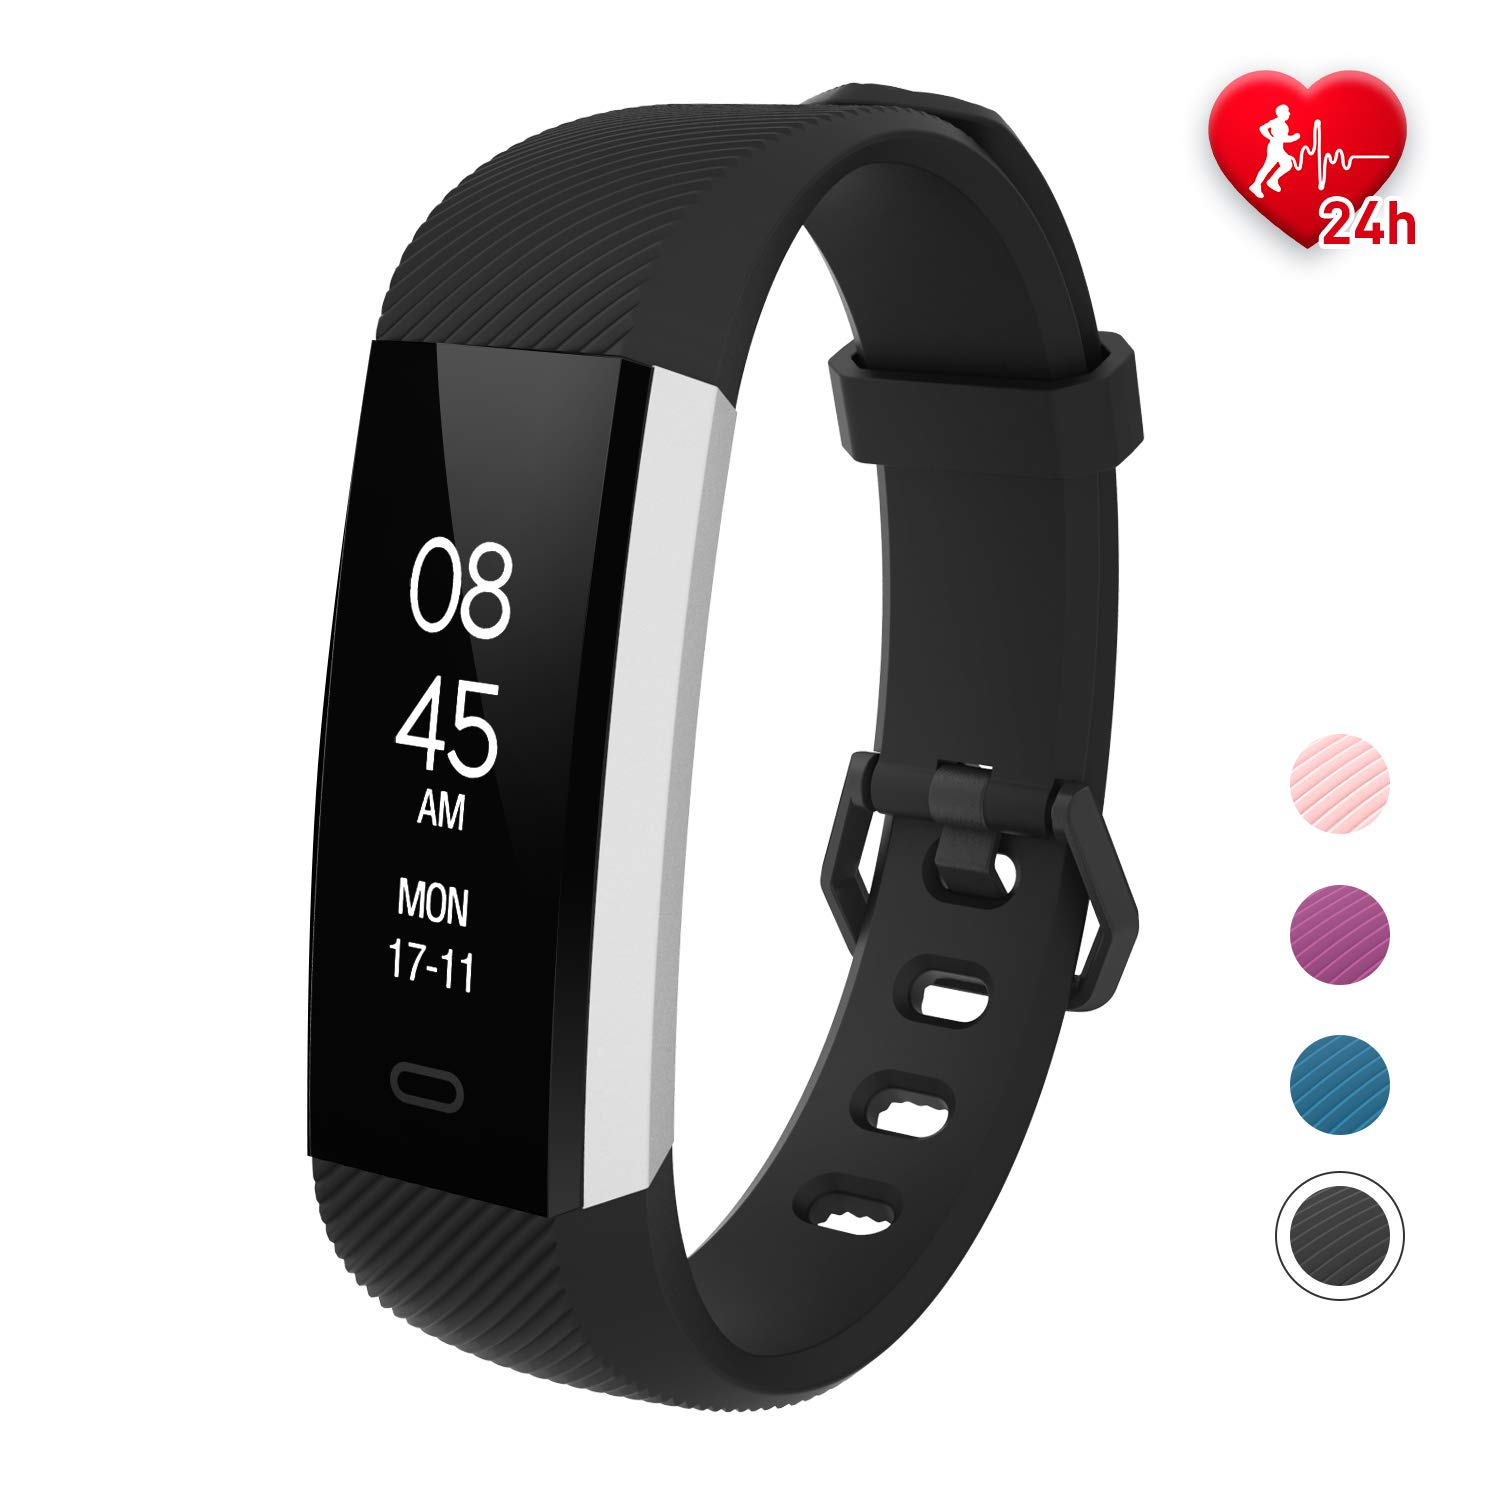 Fitpolo Fitness Tracker HR, Fitness Band with Heart Rate Monitor, Pedometer Watch, Waterproof Smart Band Activity Tracker with Step Counter, Sleep Monitor, Calorie Counter for Kids Women and Men